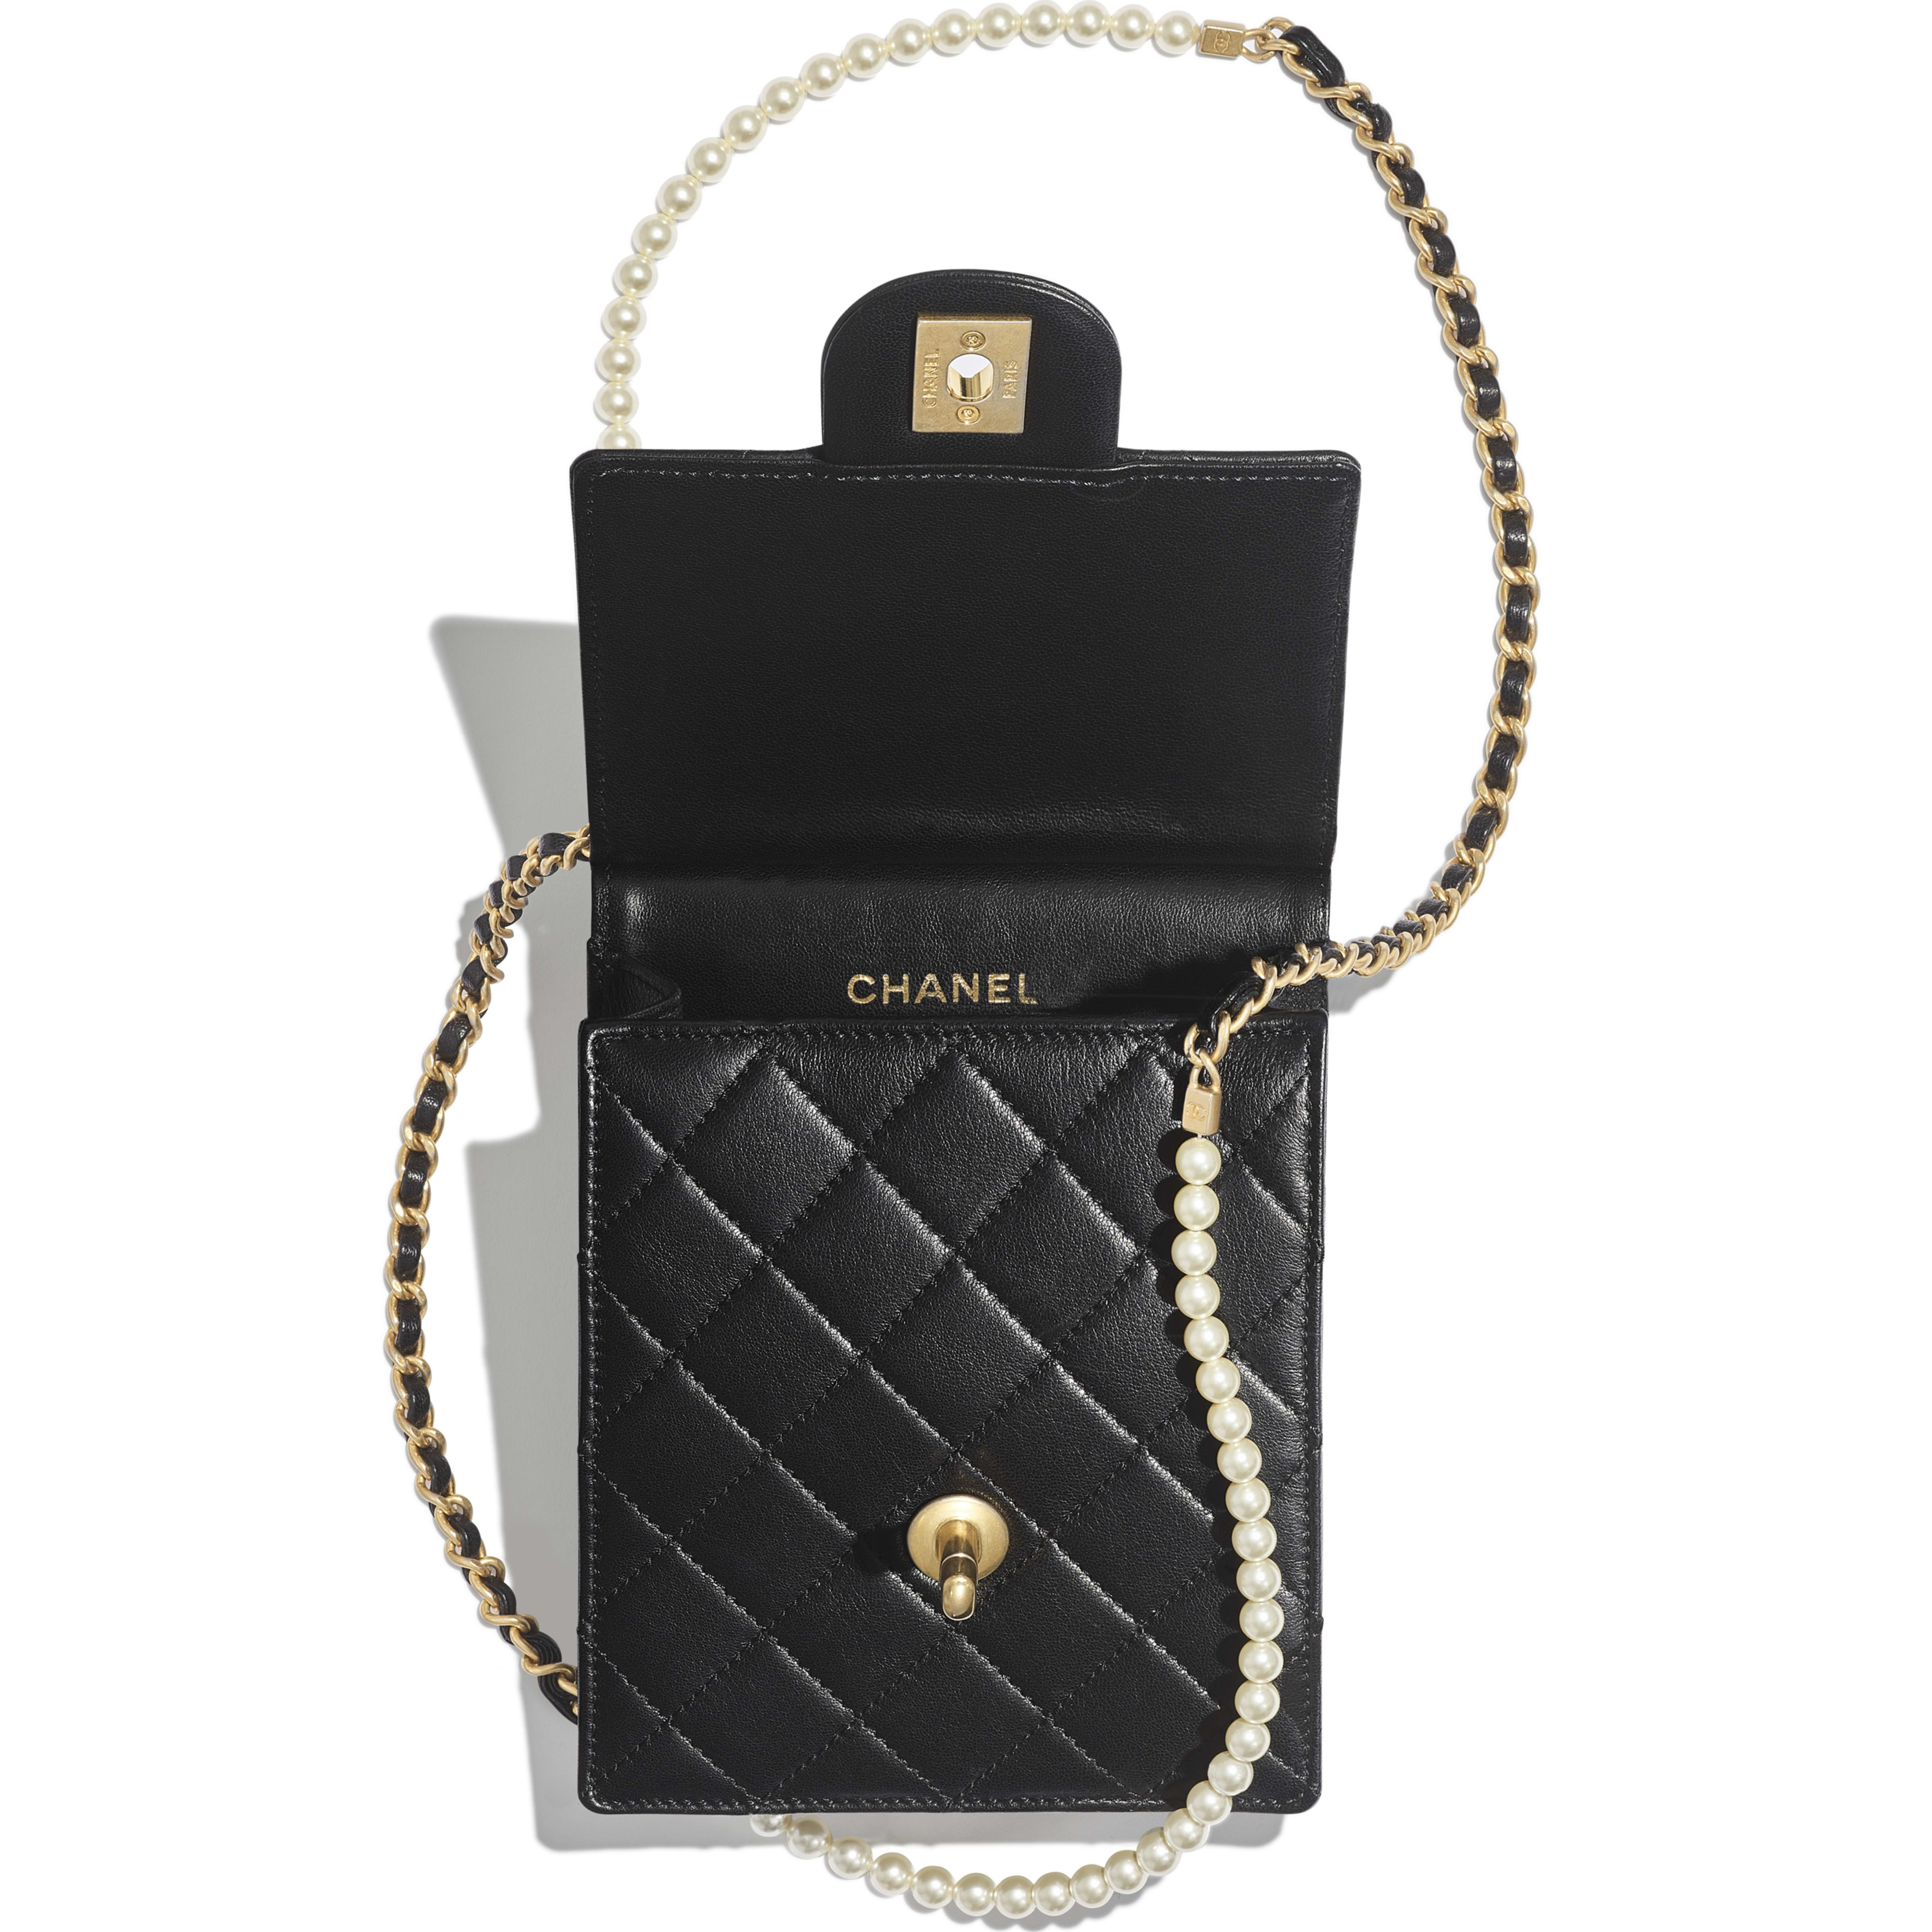 Clutch with Chain - Black - Lambskin, Imitation Pearls & Gold-Tone Metal - Other view - see full sized version